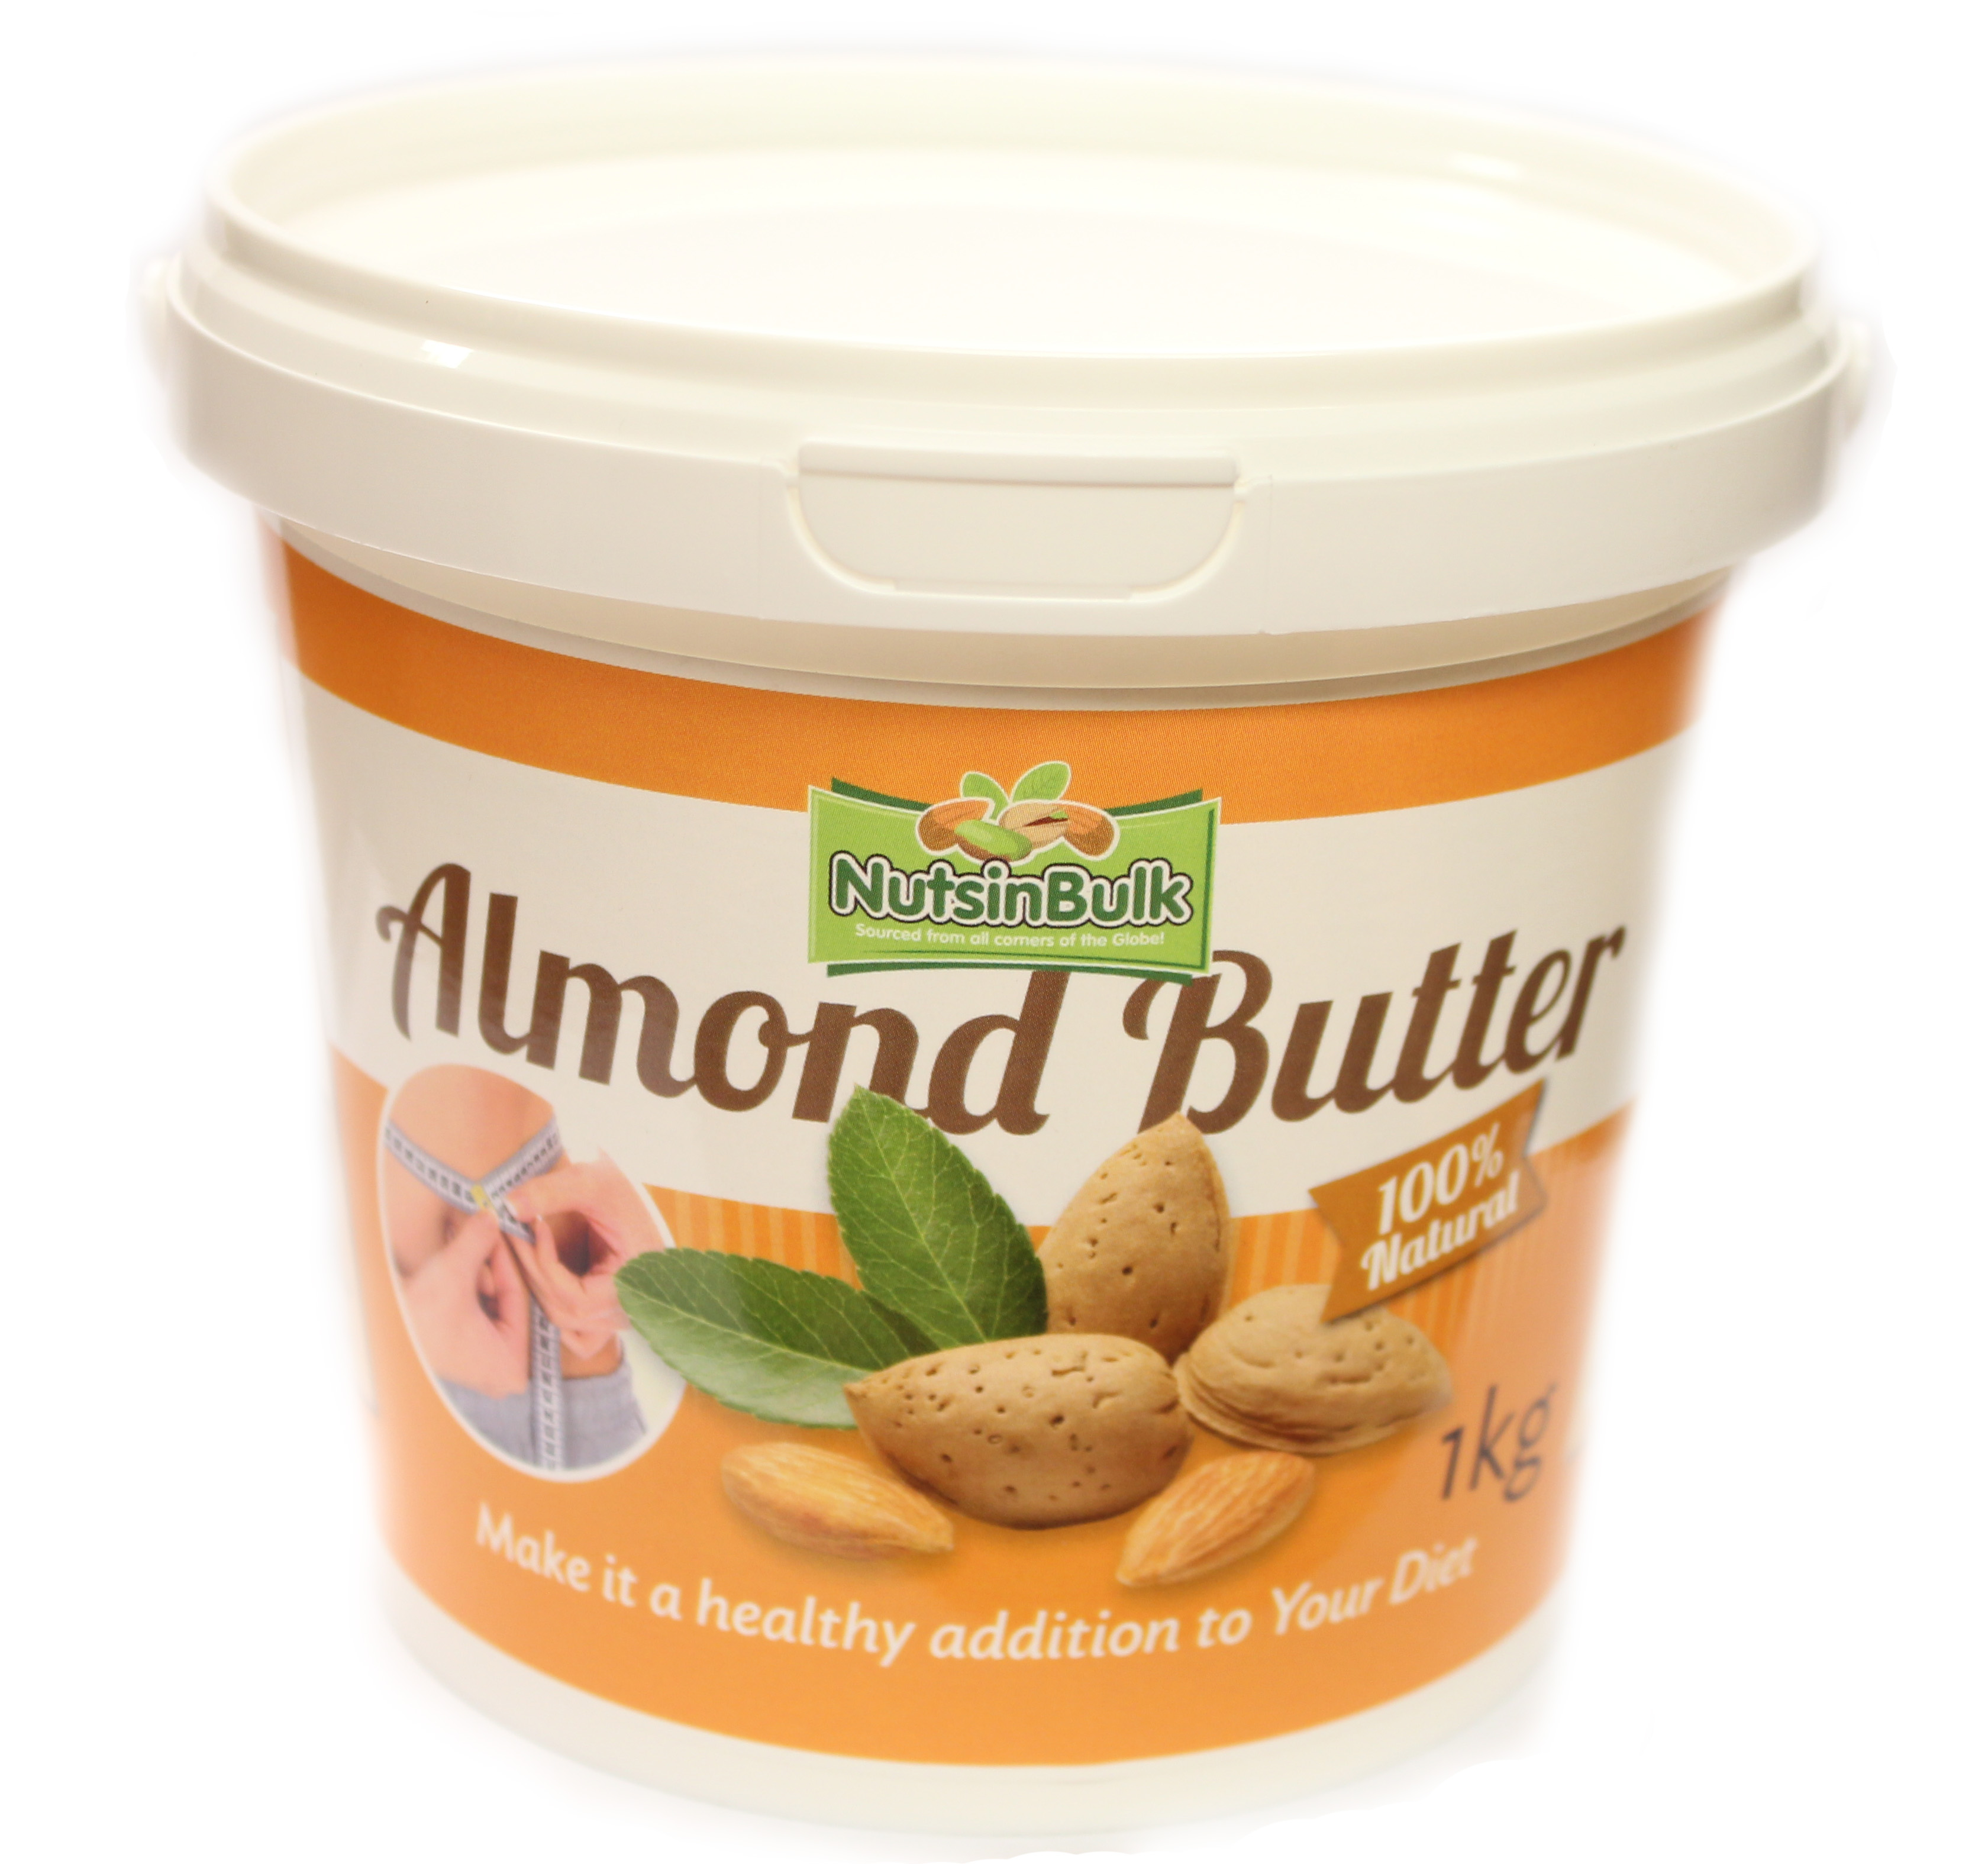 Nuts in Bulk - Almond Butter (100% Nuts) Nuts in Bulk